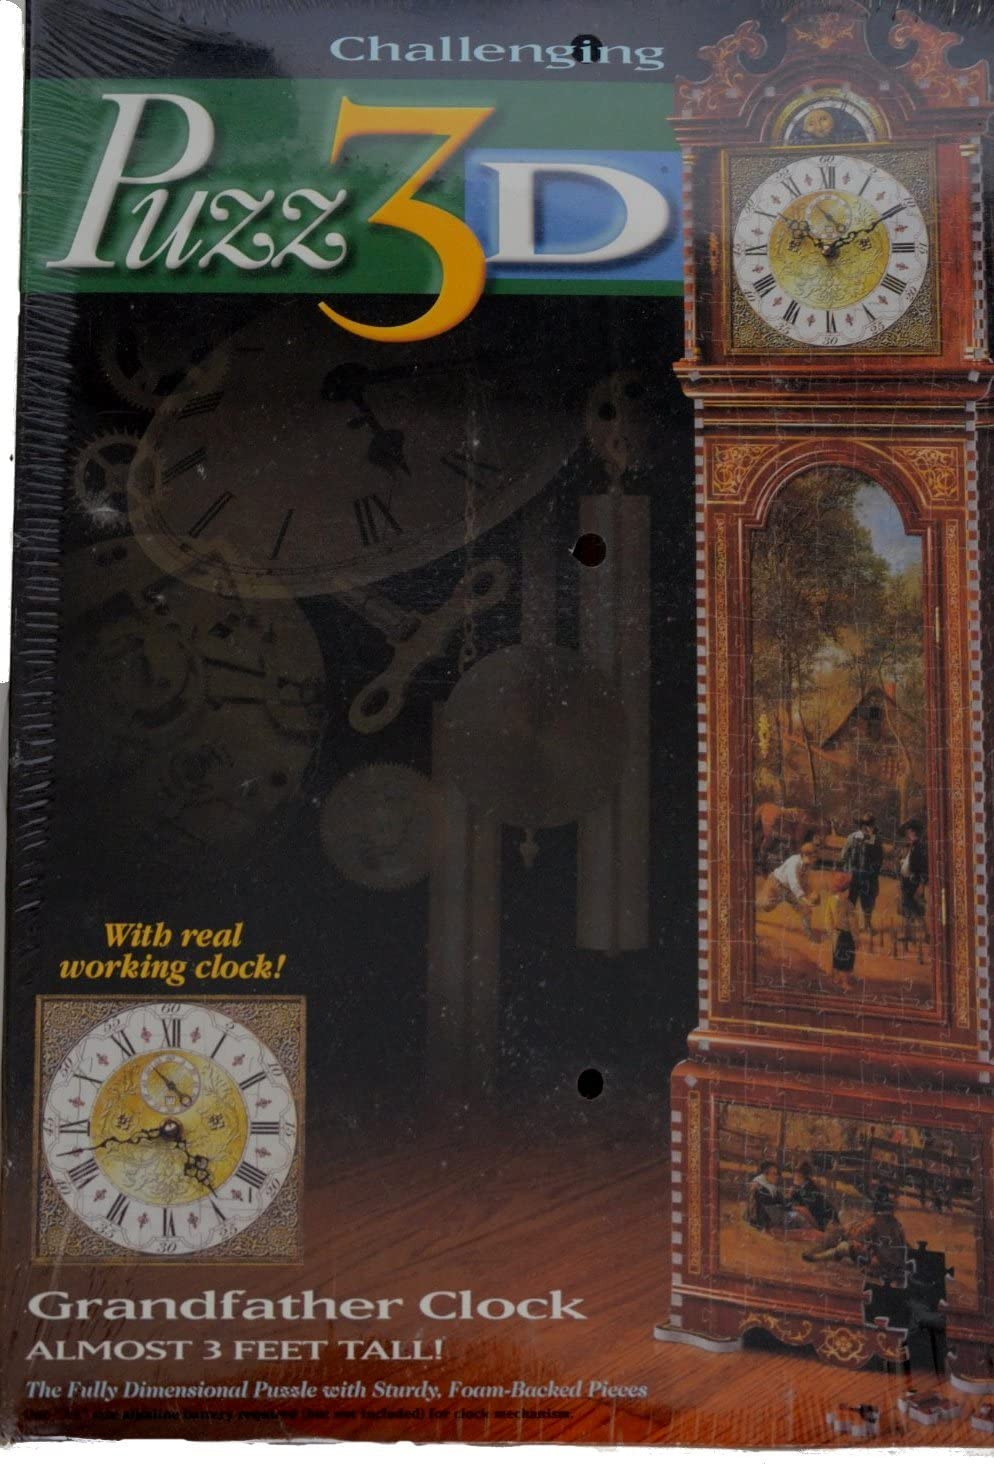 B00000IWE0 puz 3d grandfather clock 71LQQe3zSOL